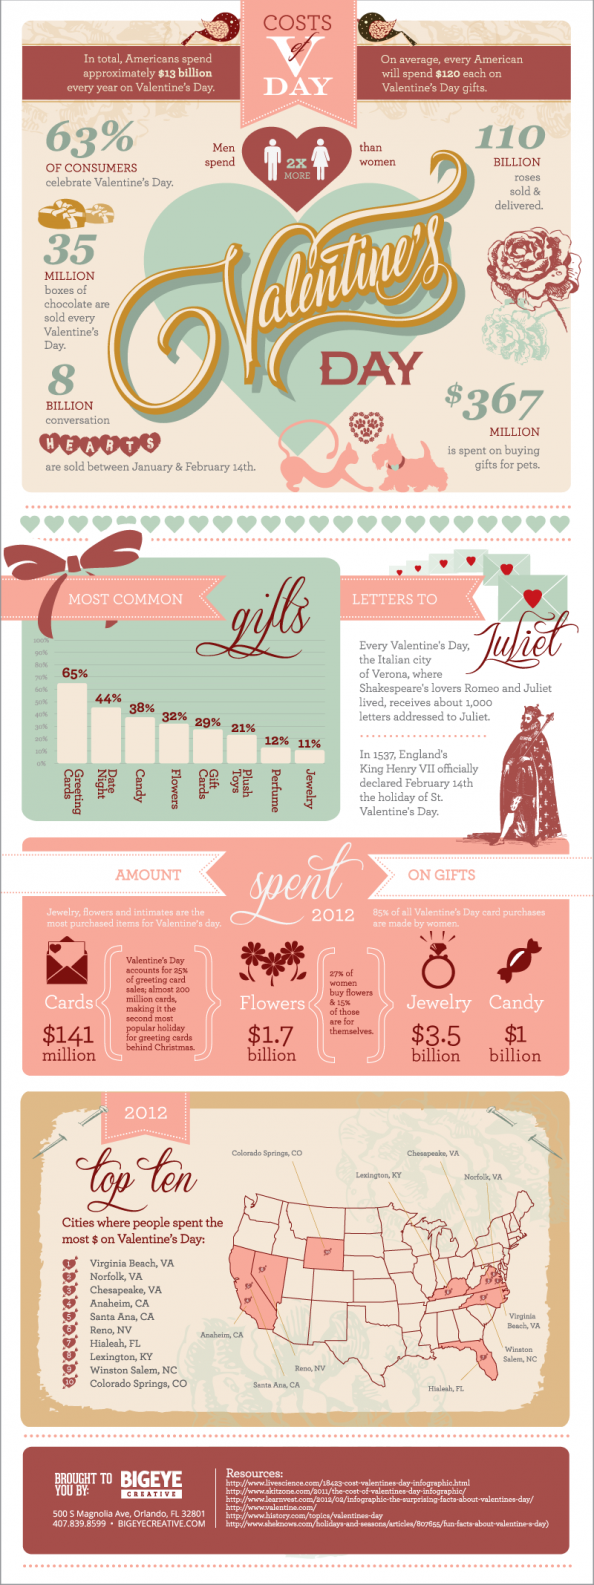 Valentine's Day is Going to Cost You Infographic